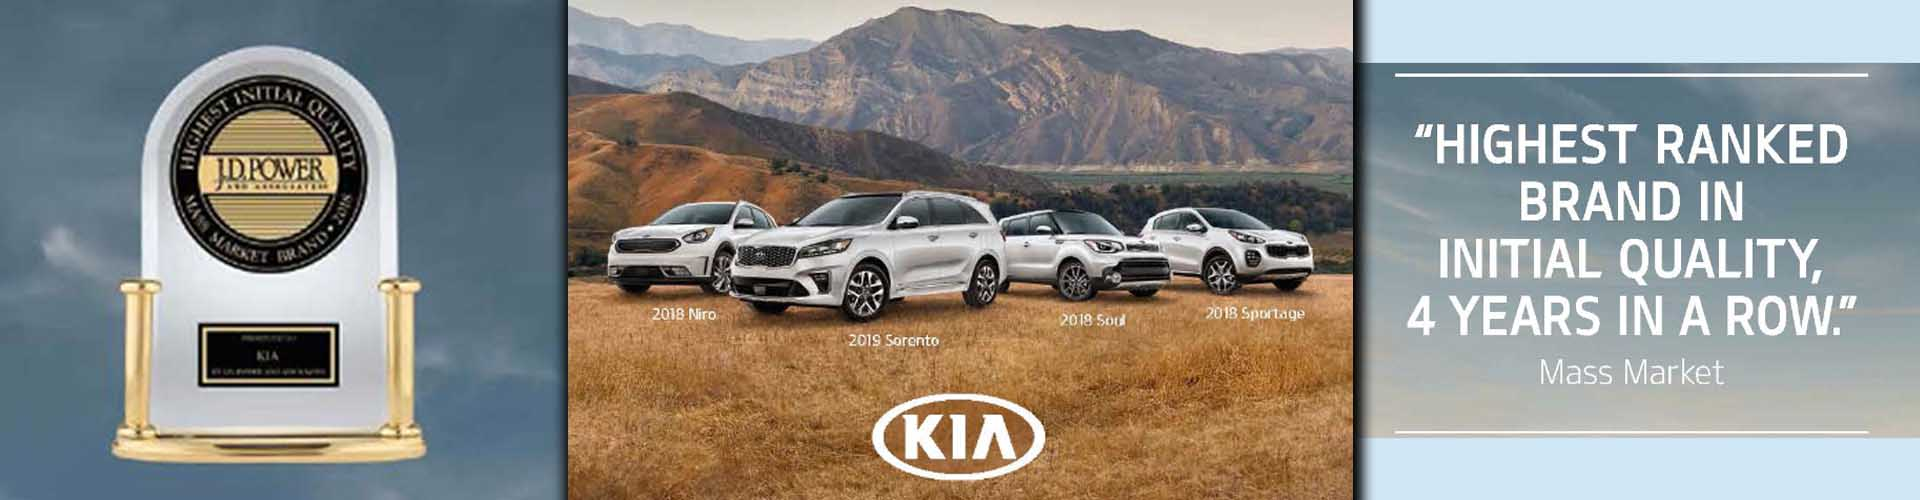 JD Power awards KIA